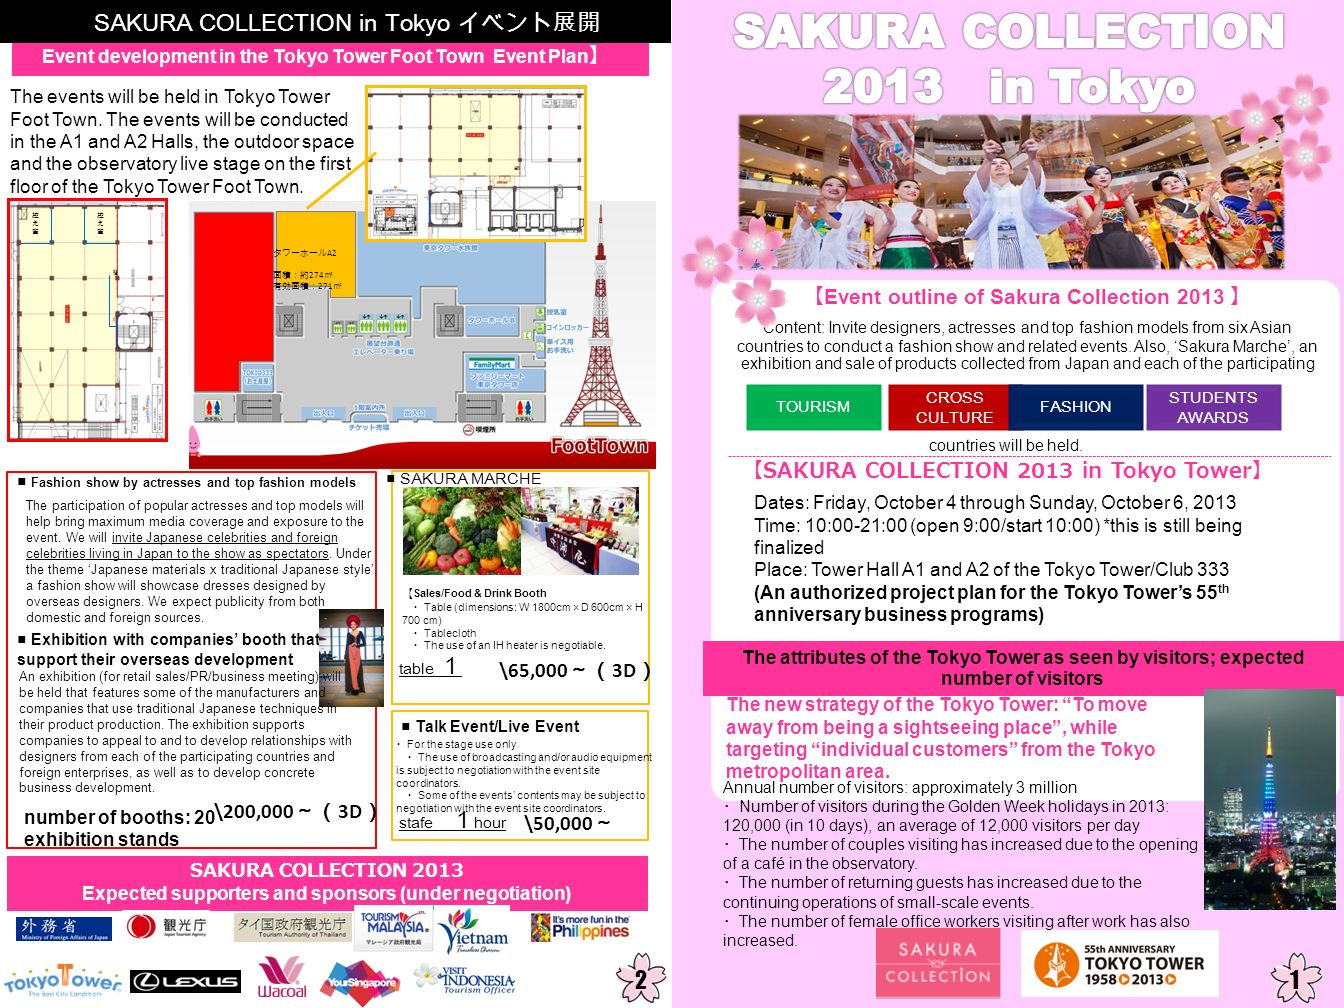 Event outline of Sakura Collection 2013 SAKURA COLLECTION 2013 in Tokyo Tower Dates: Friday, October 4 through Sunday, October 6, 2013 Time: 10:00-21: